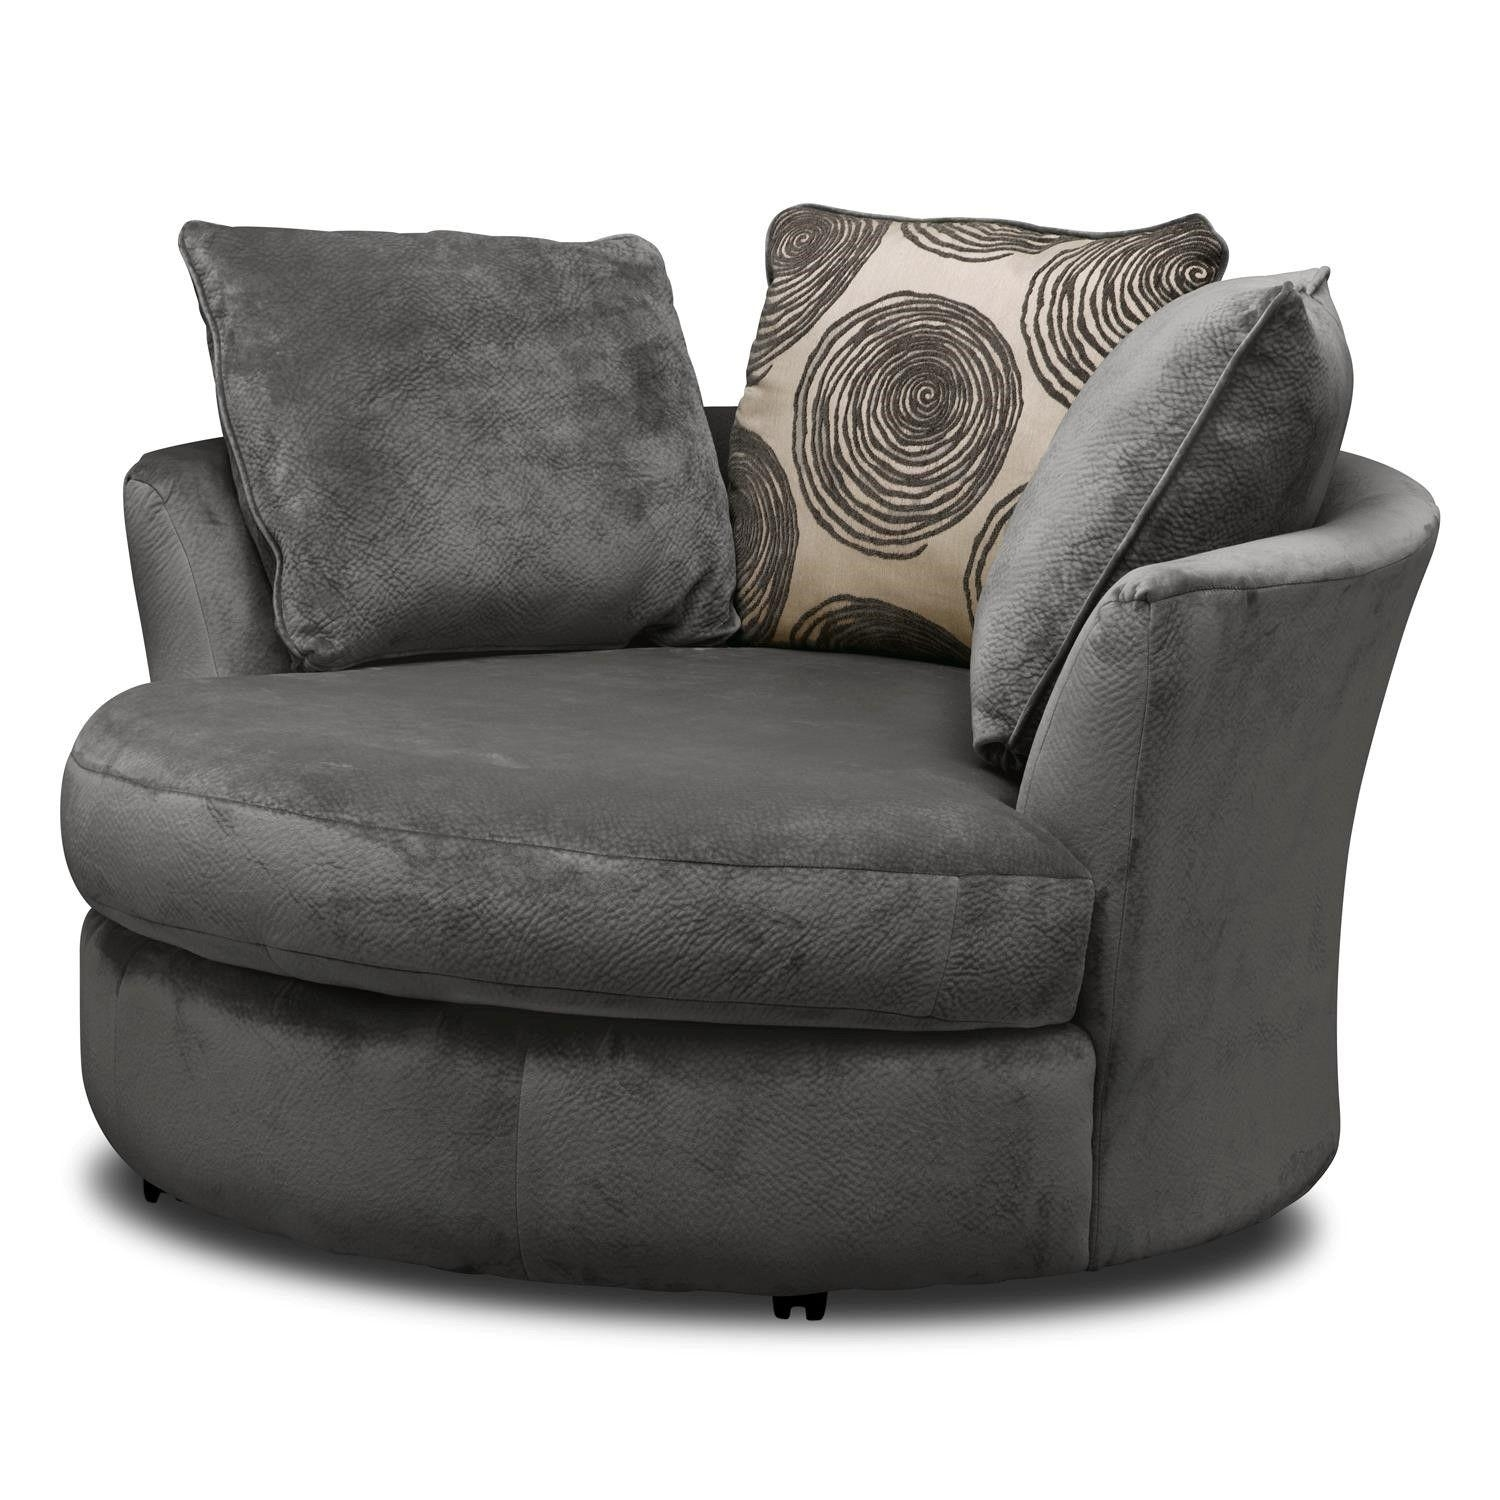 Italian Sofa Chairs 20 Best Spinning Sofa Chairs Sofa Ideas